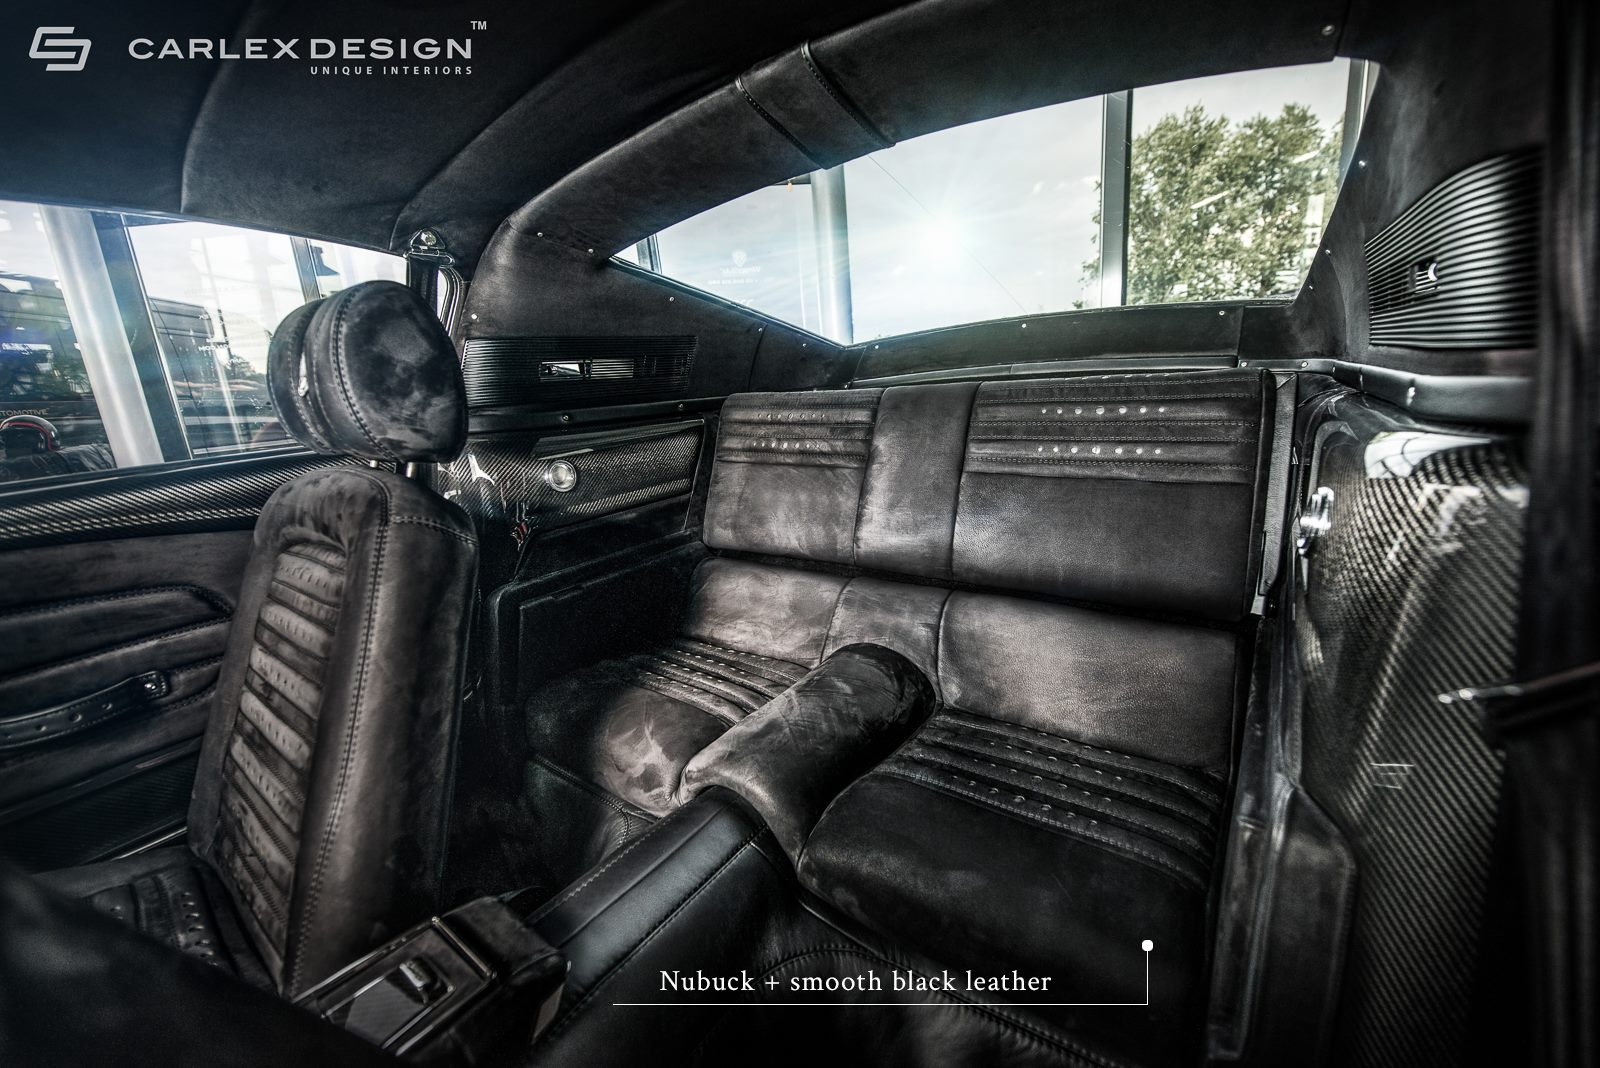 1967 Ford Mustang By Carlex Has Carbon Fiber And Alcantara Interior Autoevolution